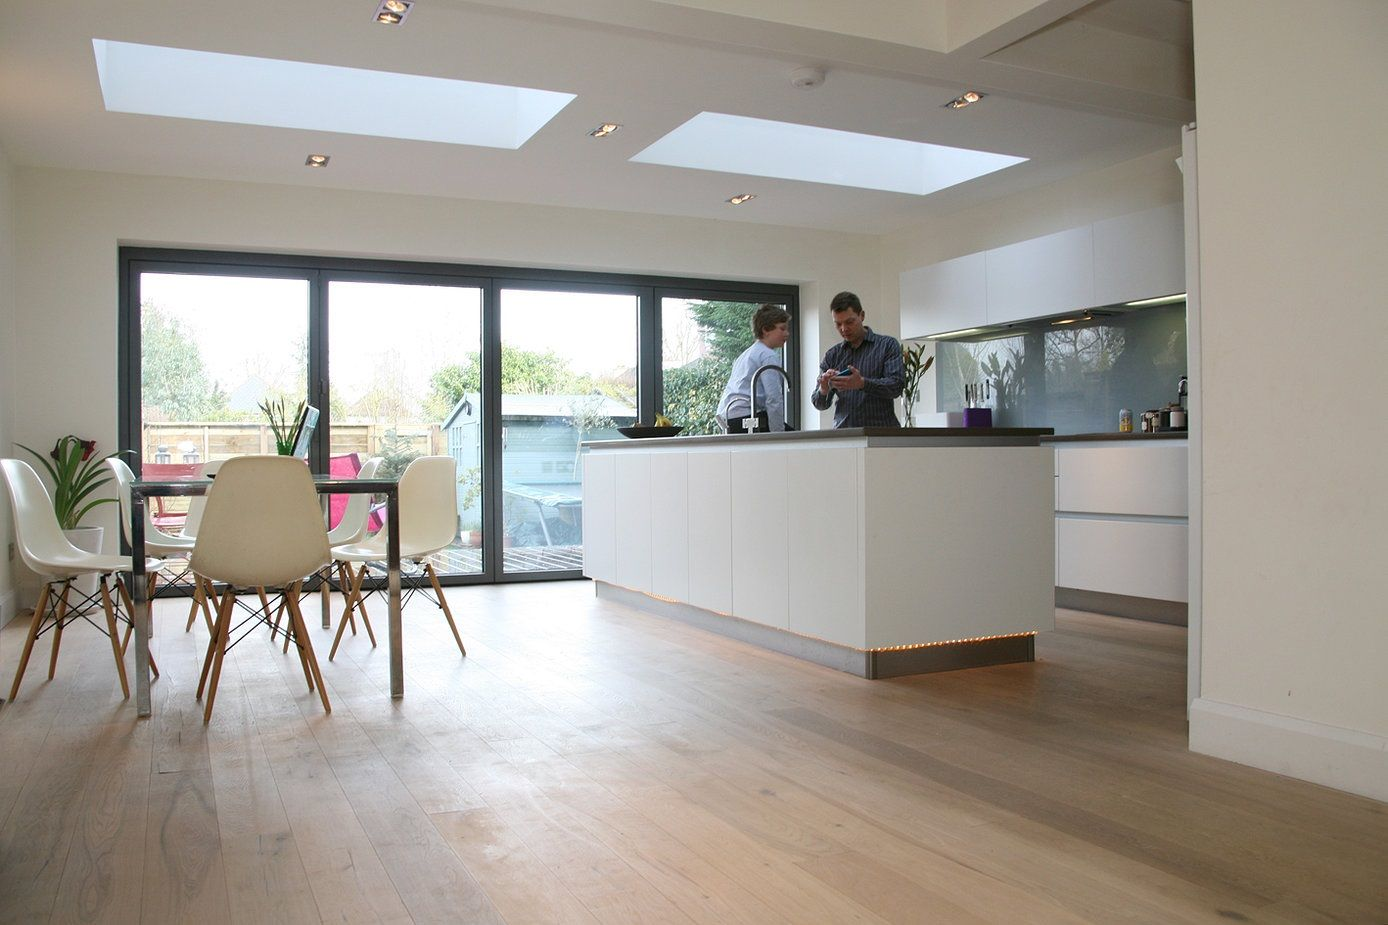 Kitchen Diner Flooring House Extension Ideas Designs House Extension Photo Gallery